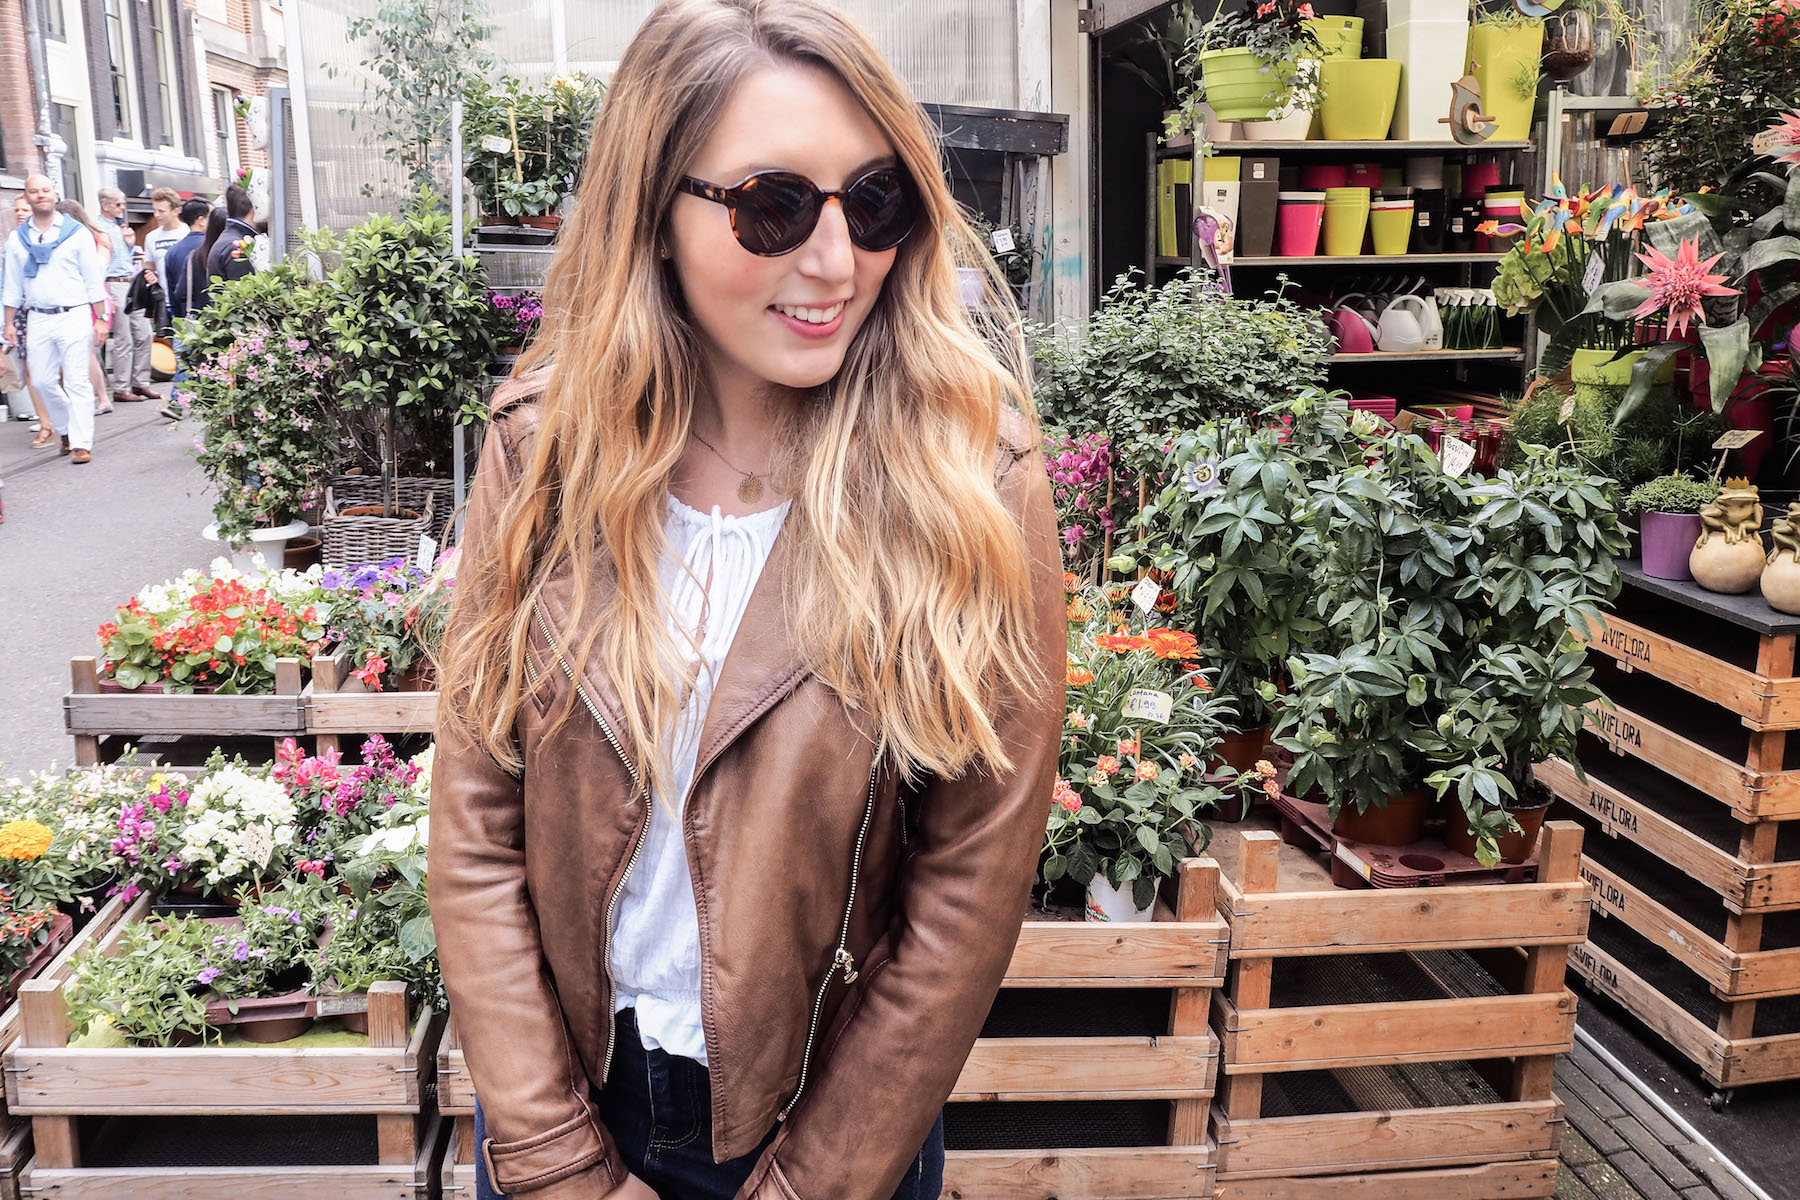 What I Wore in Amsterdam, Day 1: Massimo Dutti Leather Jacket, Urban Outfitters white blouse, H&M jeans, Soludos espadrilles, & Other Stories Sunglasses | Wolf & Stag